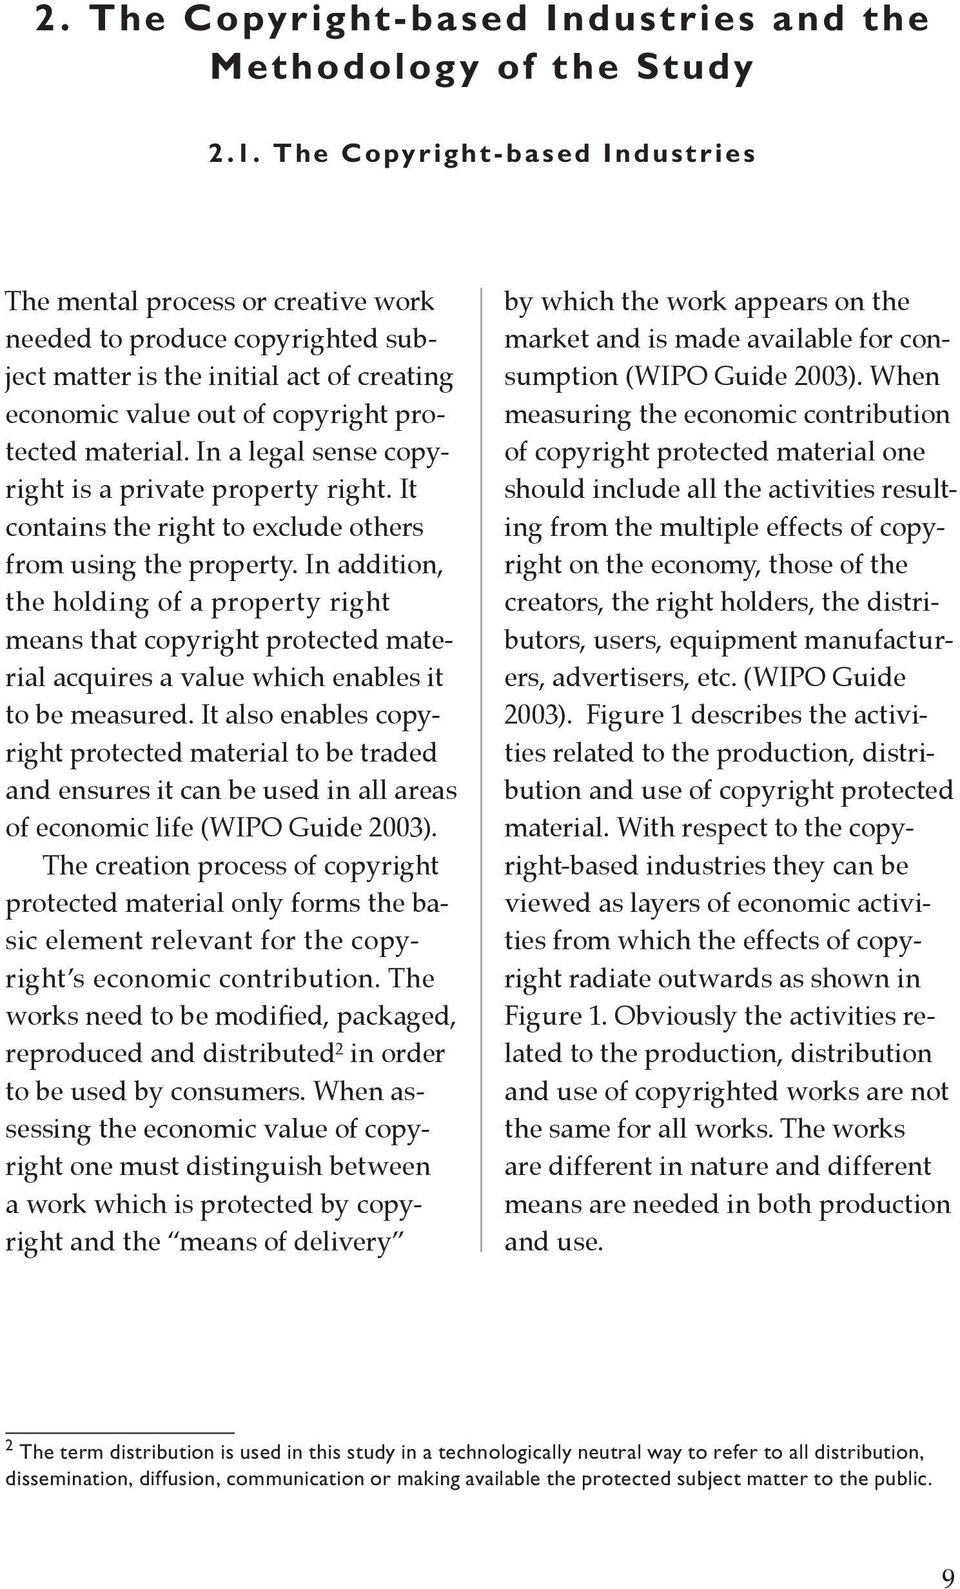 In a legal sense copyright is a private property right. It contains the right to exclude others from using the property.